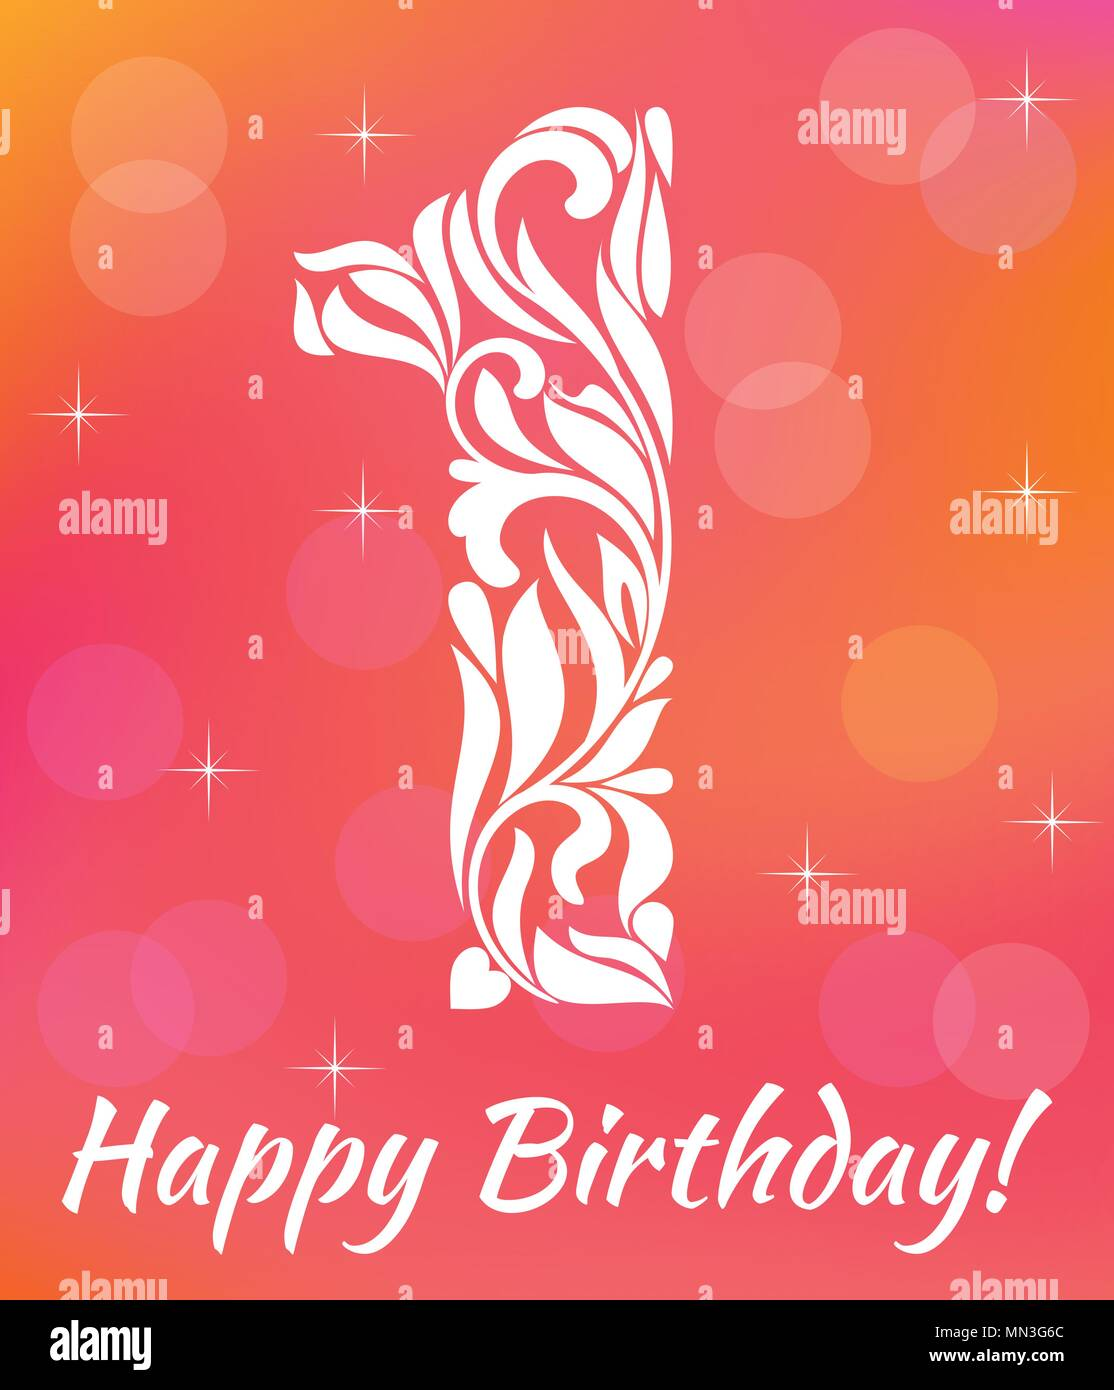 Bright Greeting Card Invitation Template Celebrating 1 Years Birthday Decorative Font With Swirls And Floral Elements